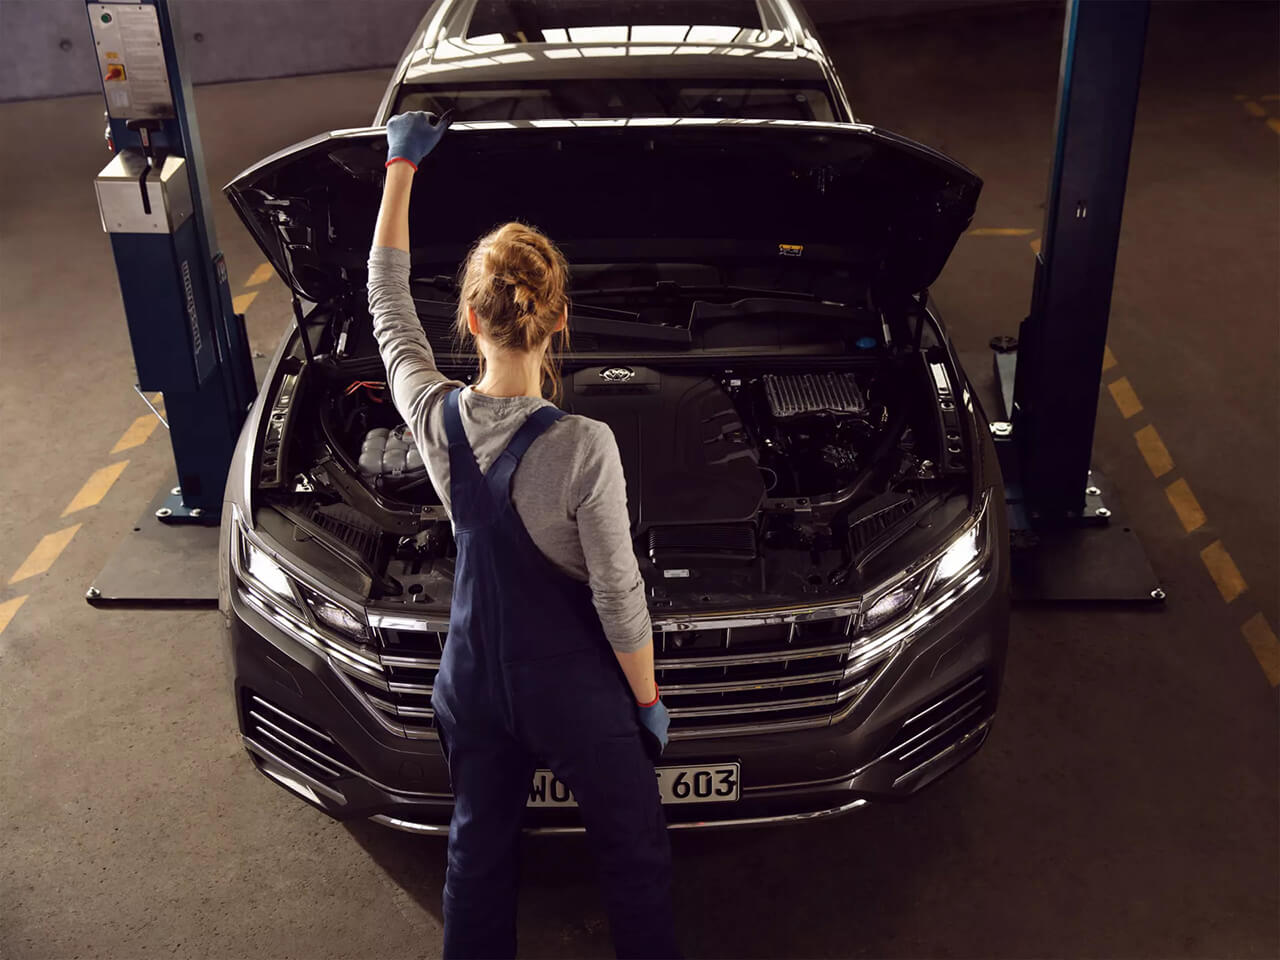 Peace of mind servicing for your Volkswagen 4Plus Care Plan: 2-year Image